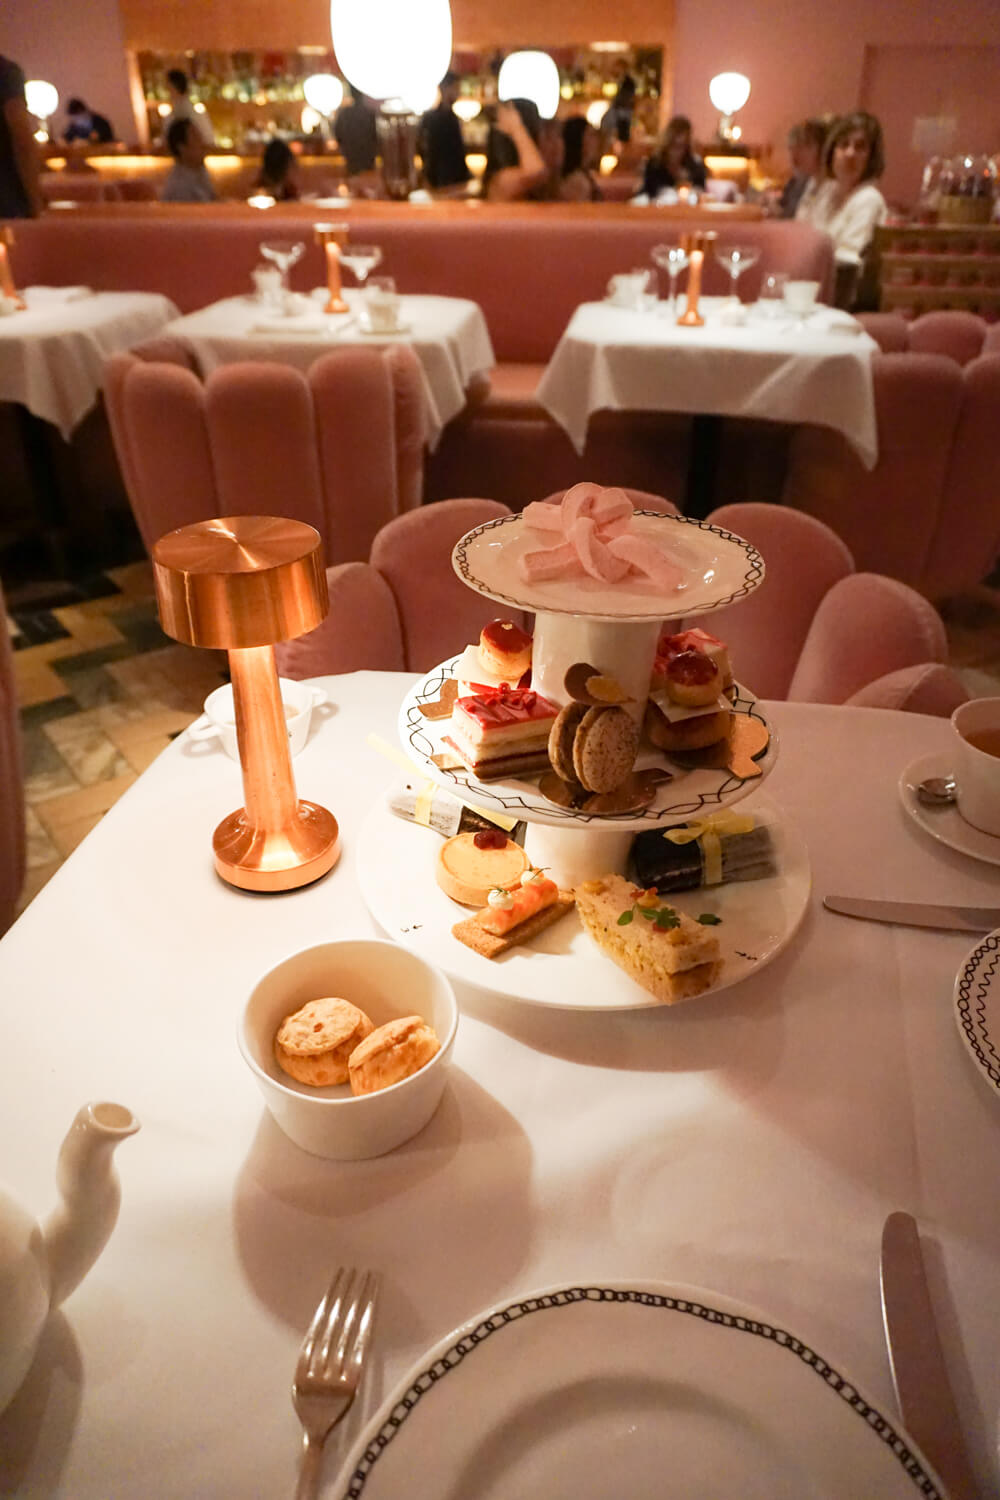 5-Day London Itinerary: Sketch for Afternoon Tea